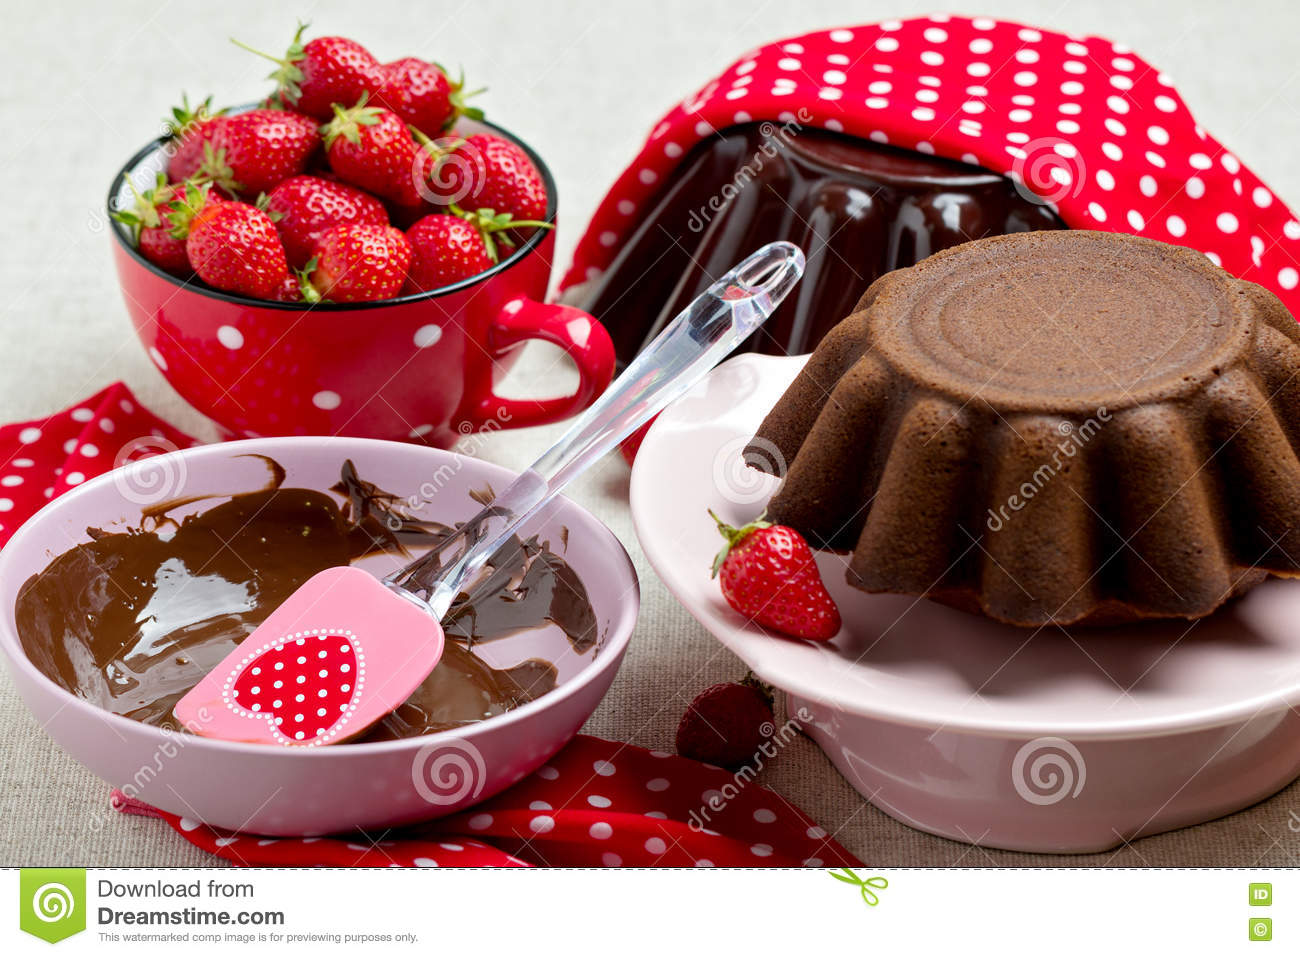 Cake Decorating Stock Images : Chocolate Cake. Decorating With Chocolate Icing And ...